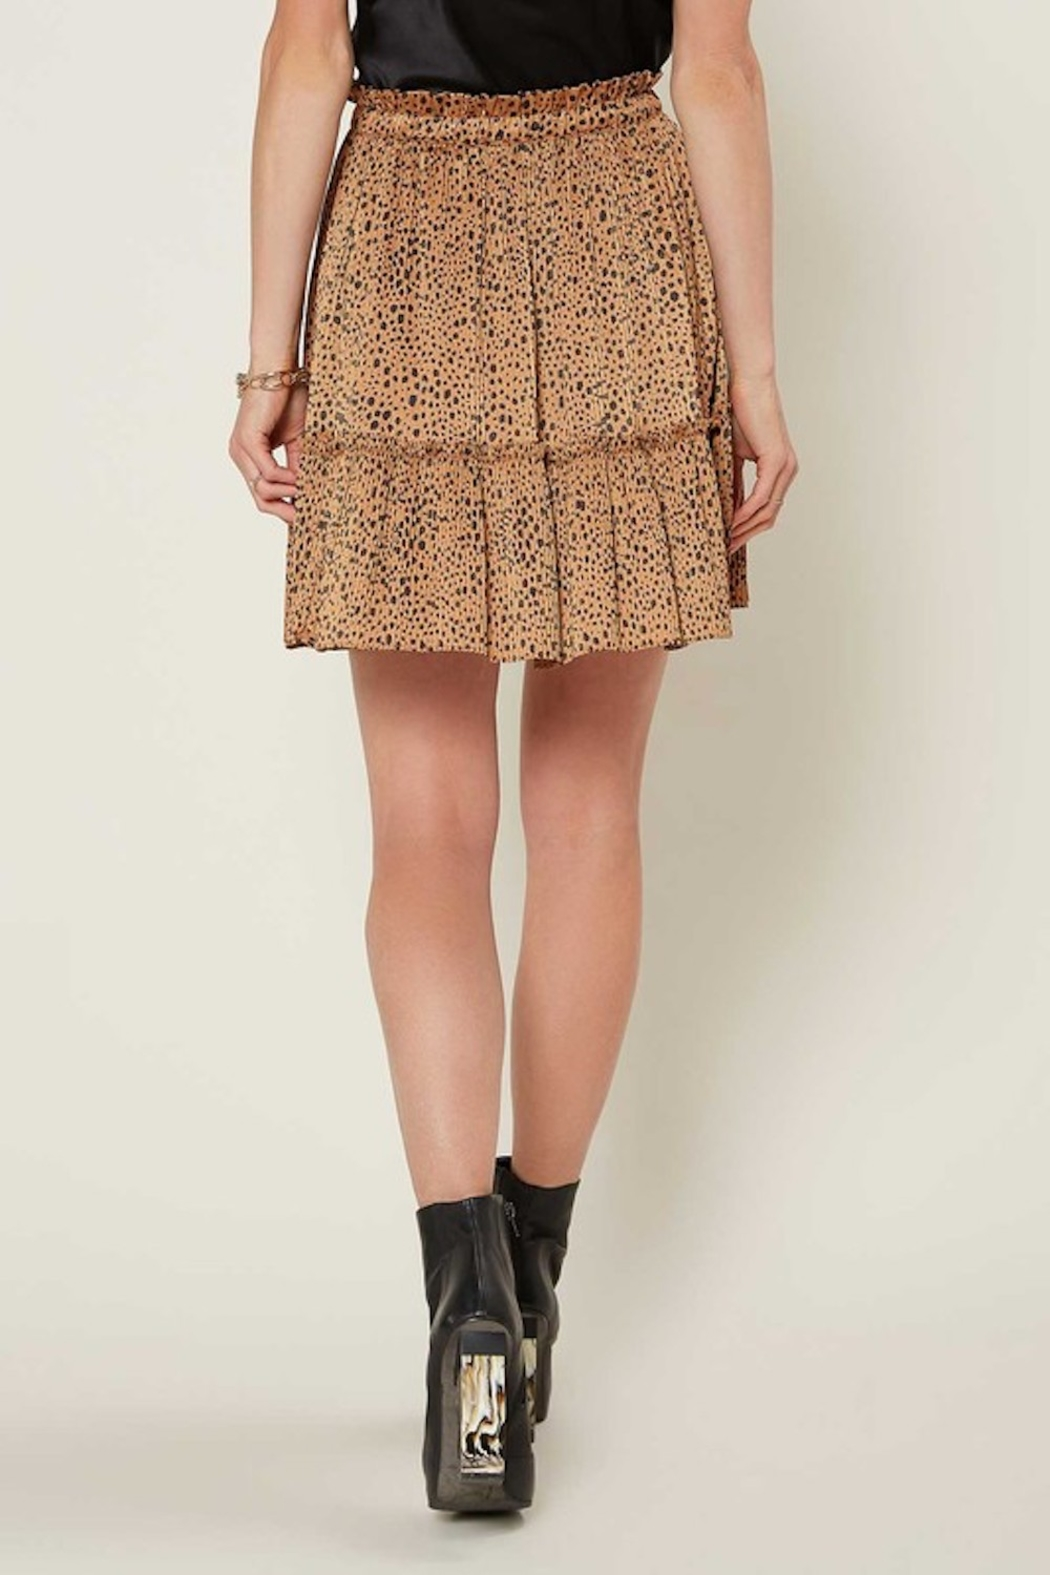 Current Air  Leopard Pleated Mini Skirt - Side Cropped Image